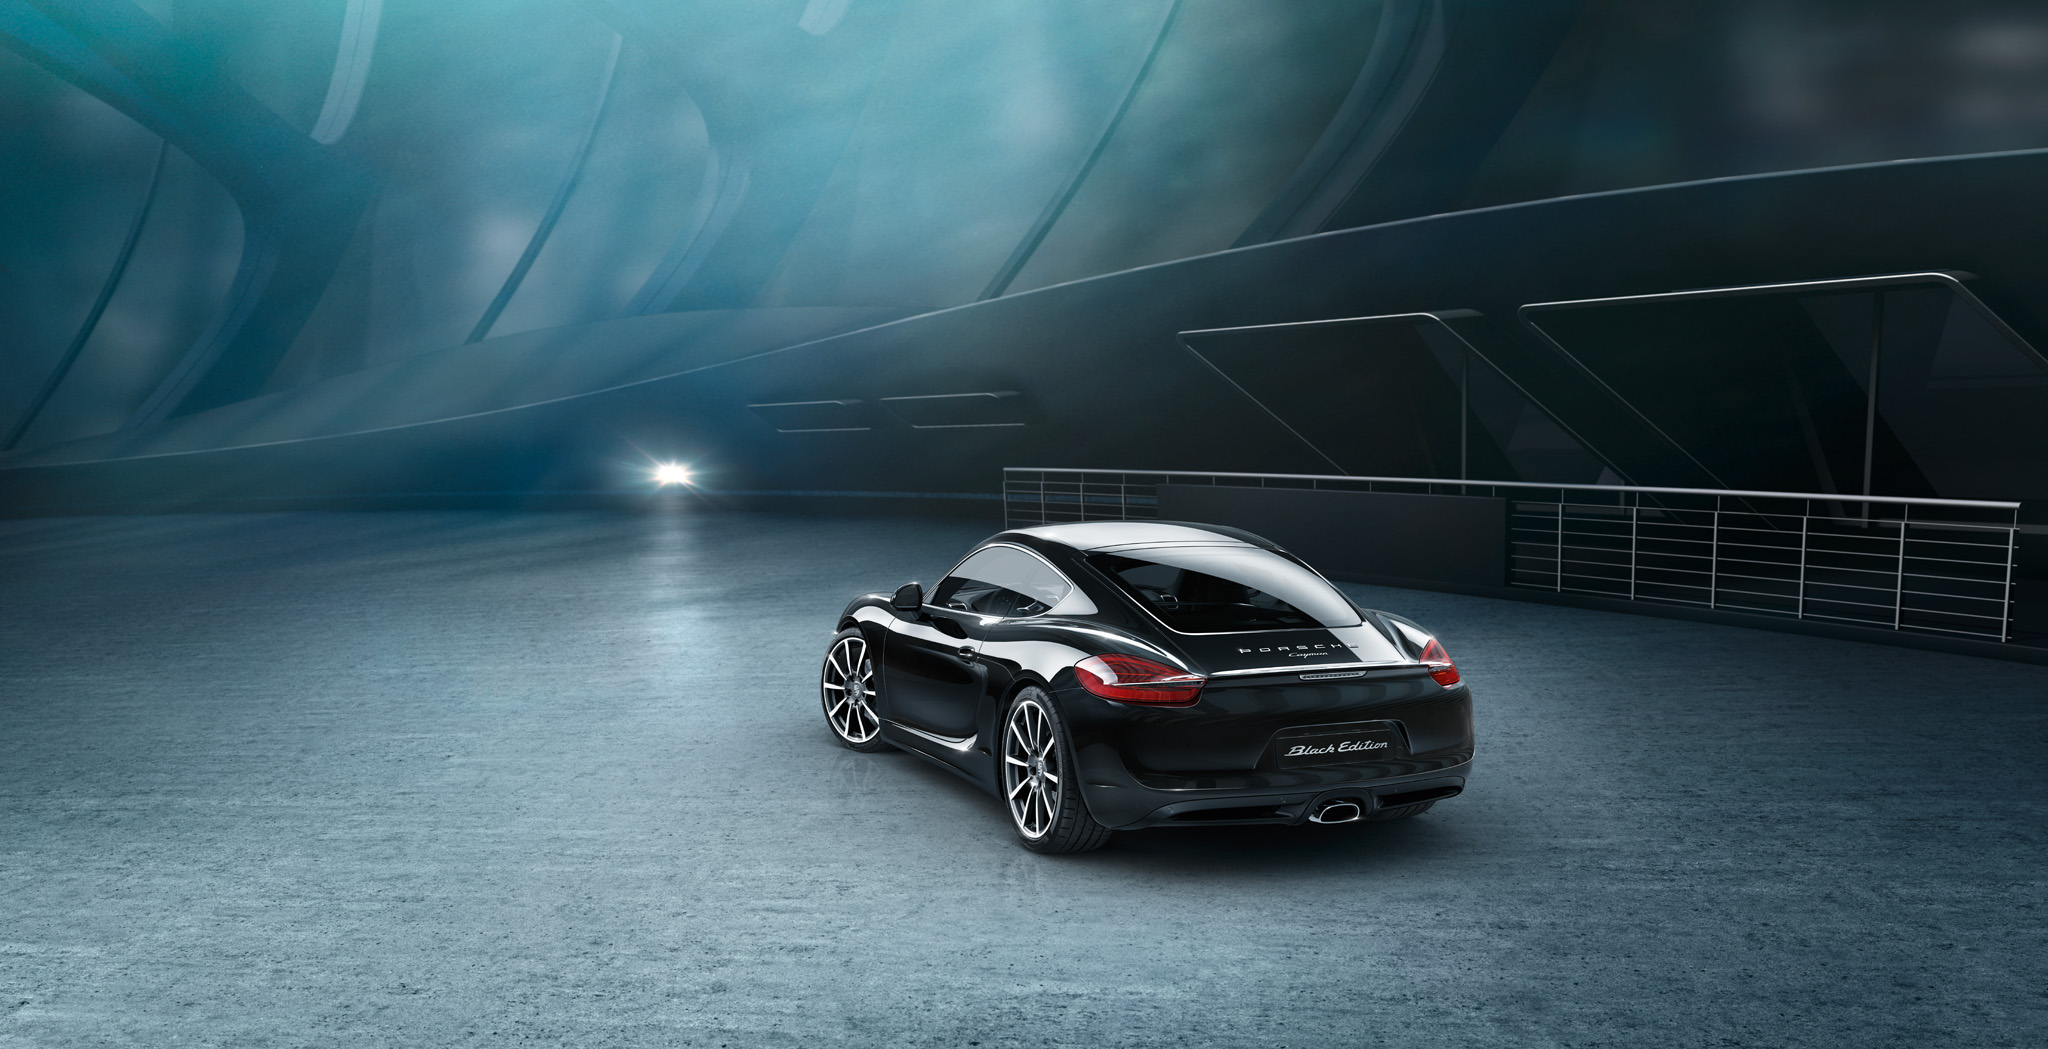 The new Cayman Black Edition. Object of desire.